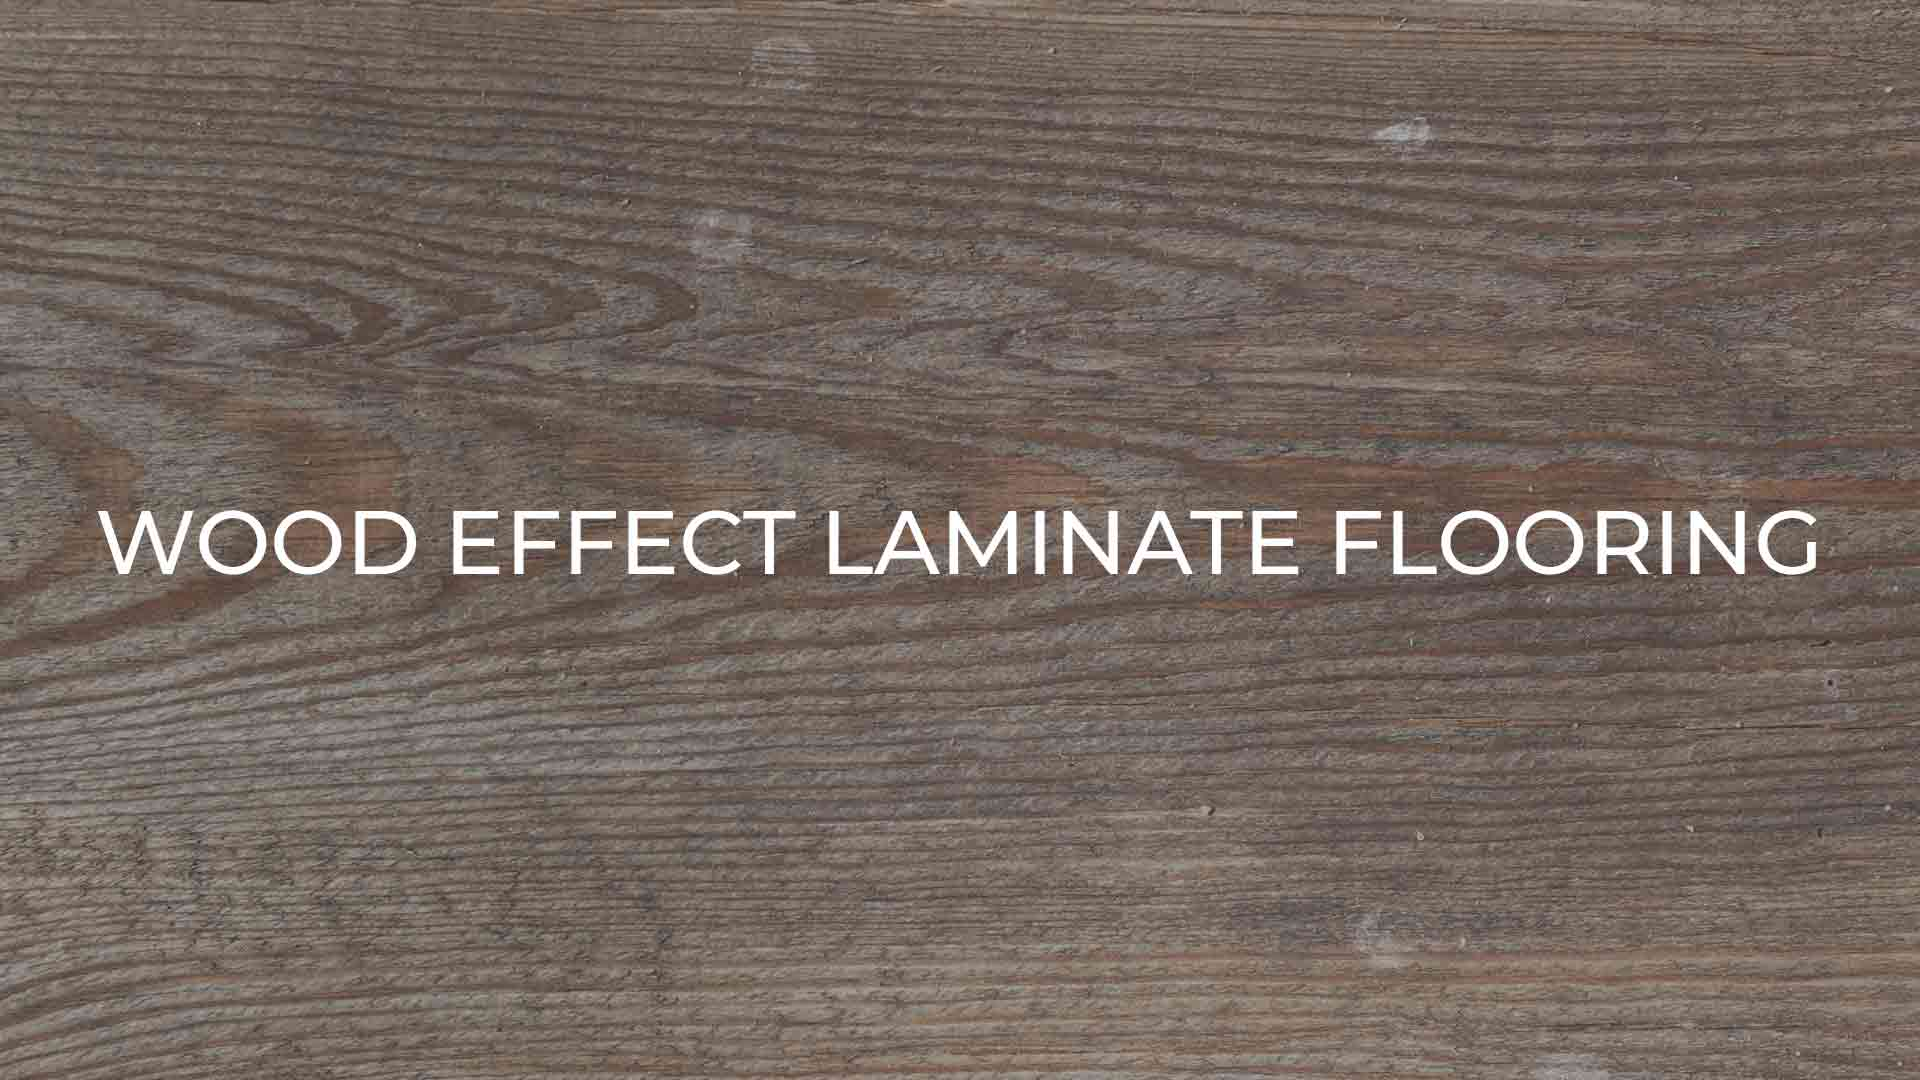 Wood Effect Laminate Flooring